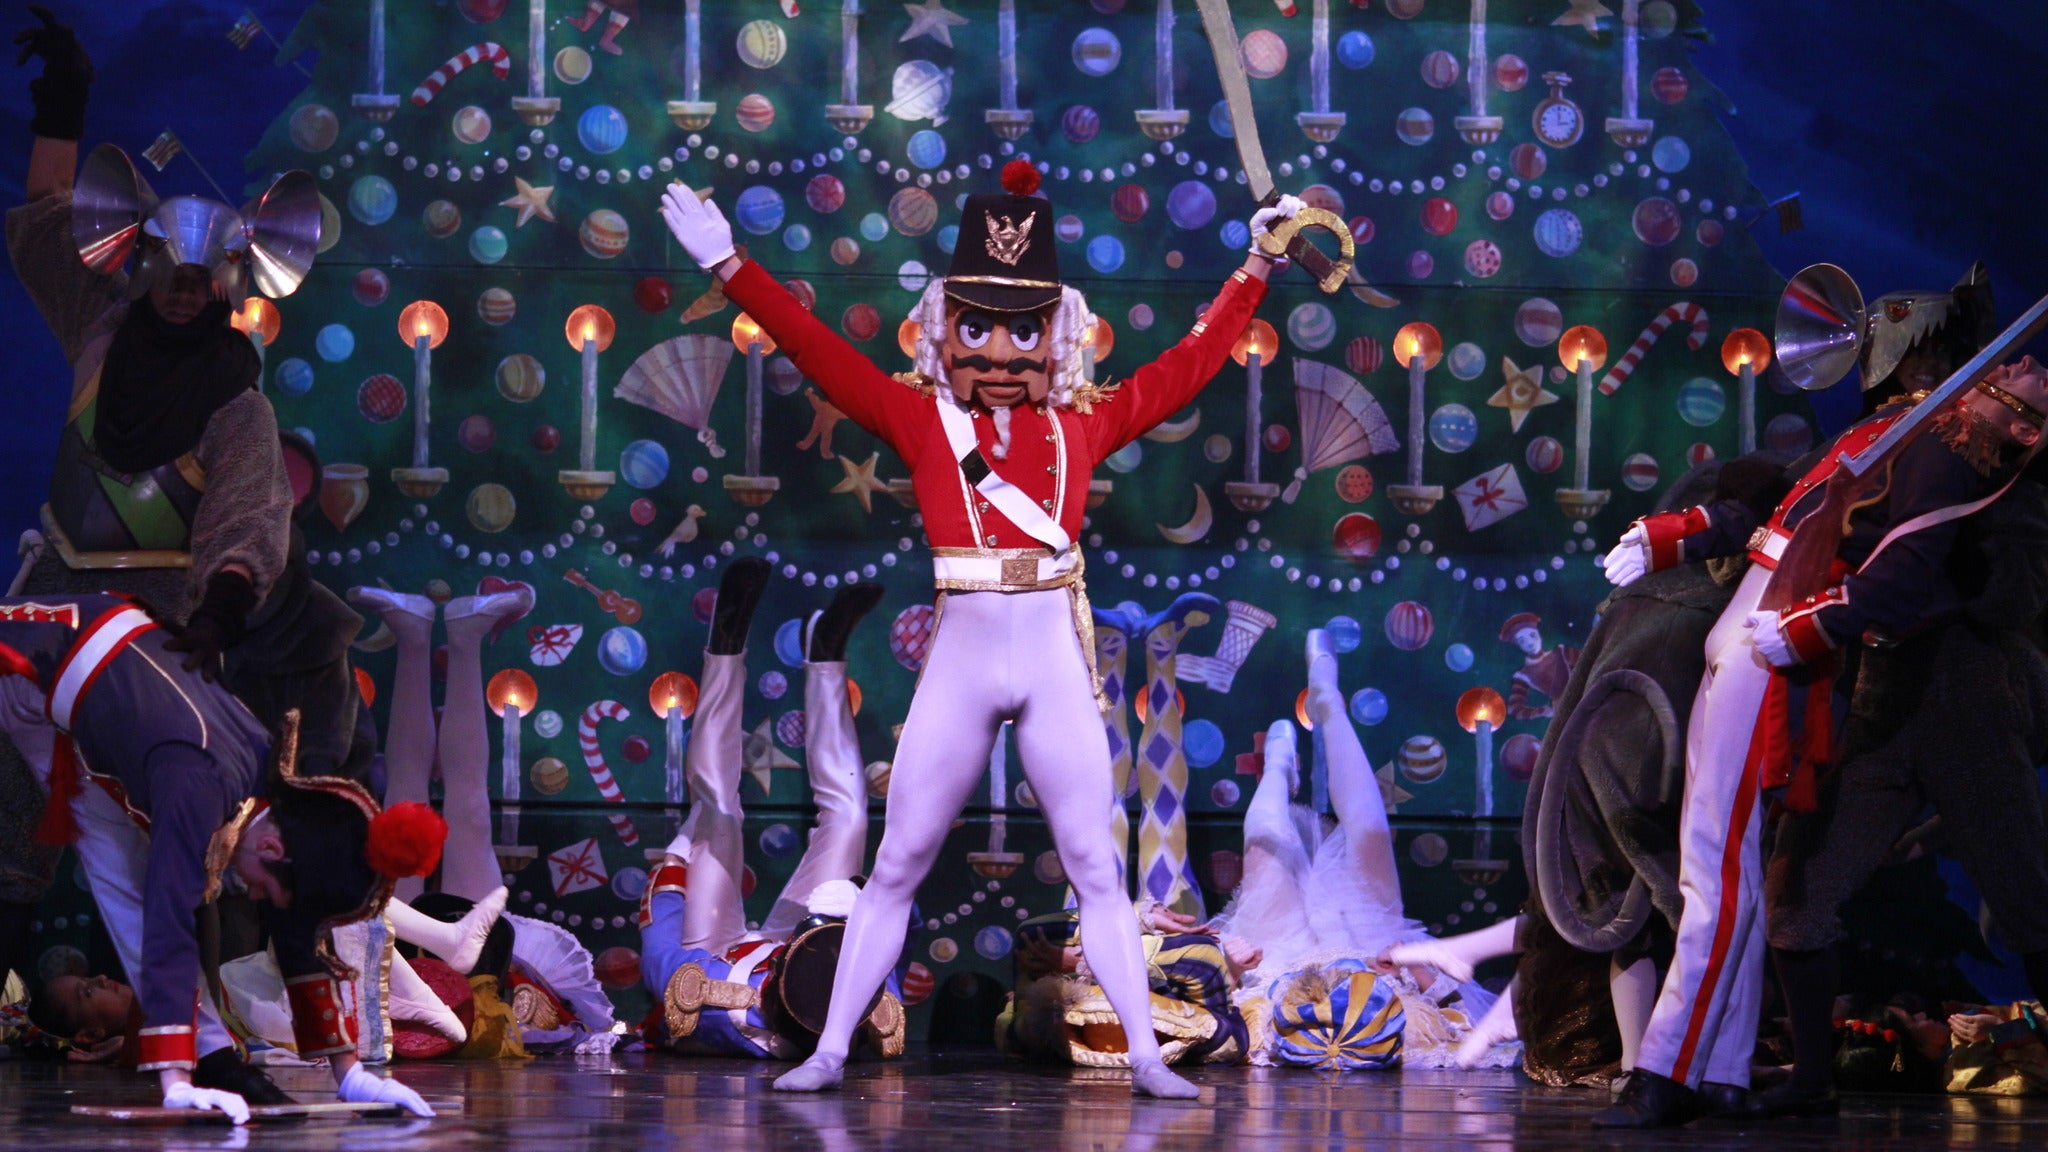 The Nutcracker at The Peabody Daytona Beach